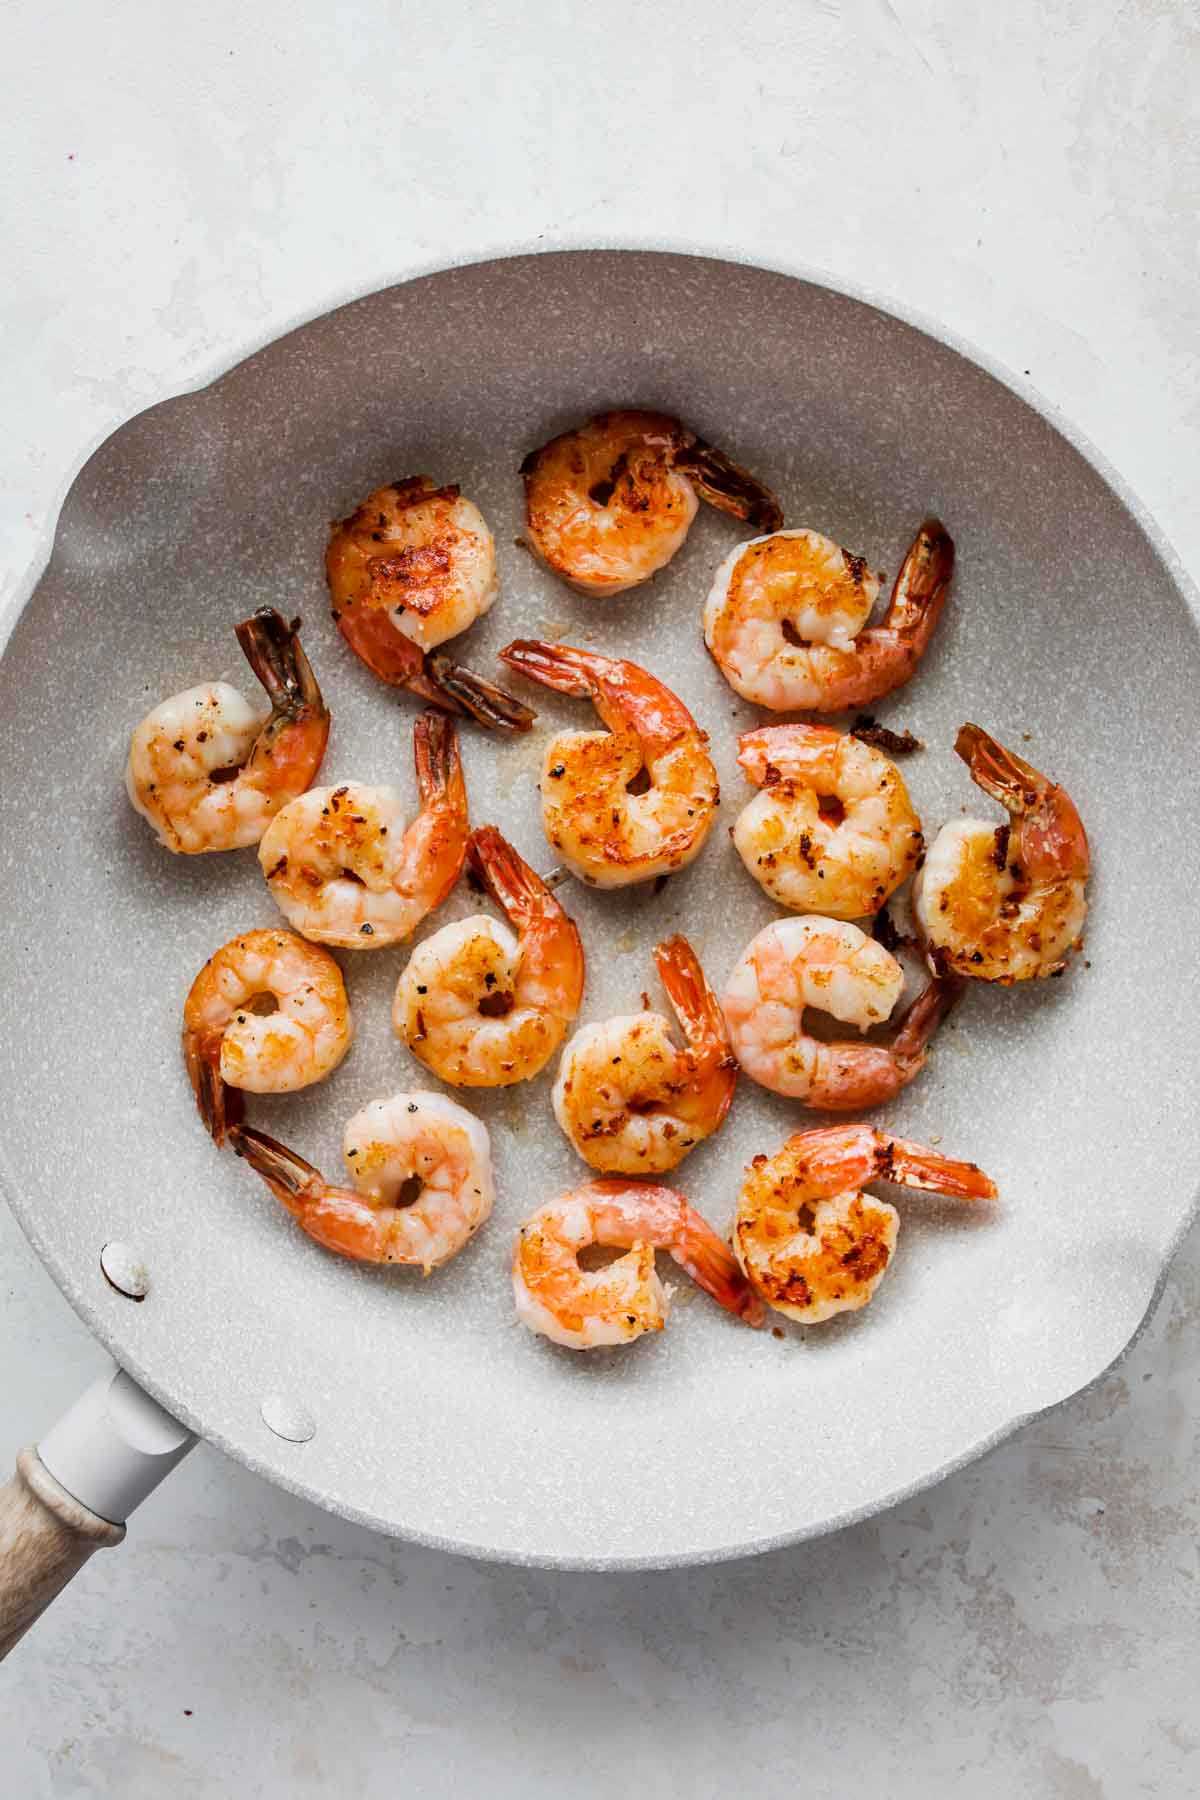 Prawns being pan-seared in a large white skillet